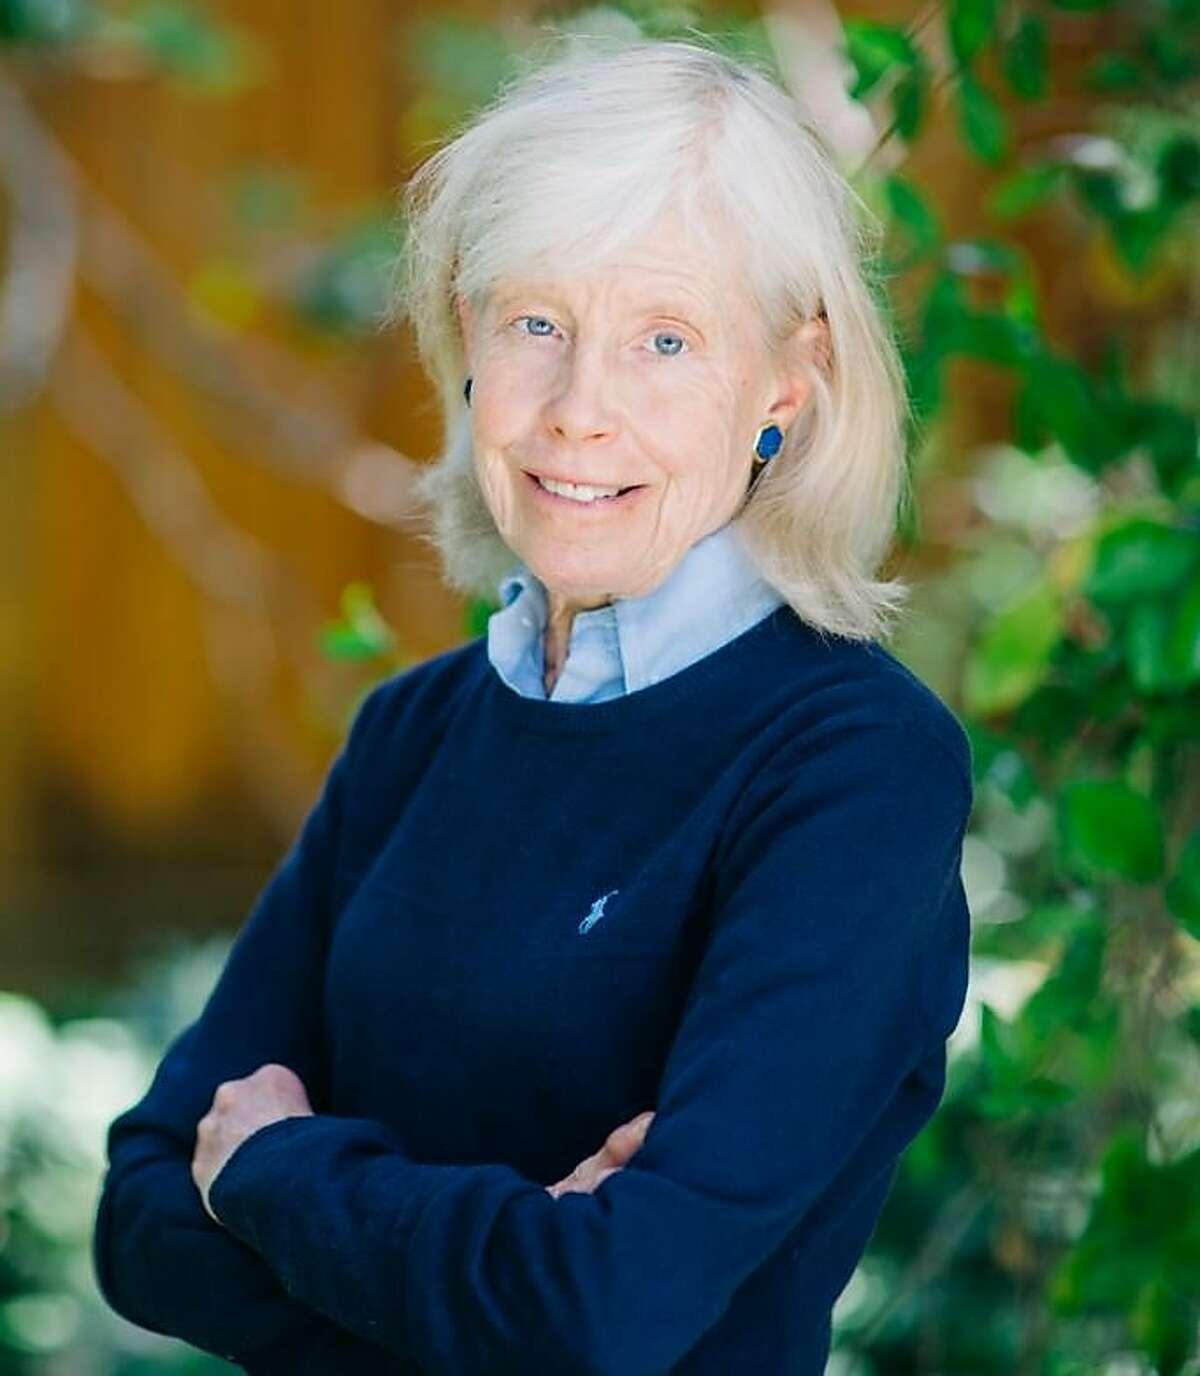 Stanford Law Professor Deborah Rhode, one of the nation's leading scholars on legal ethics, has died at 68.